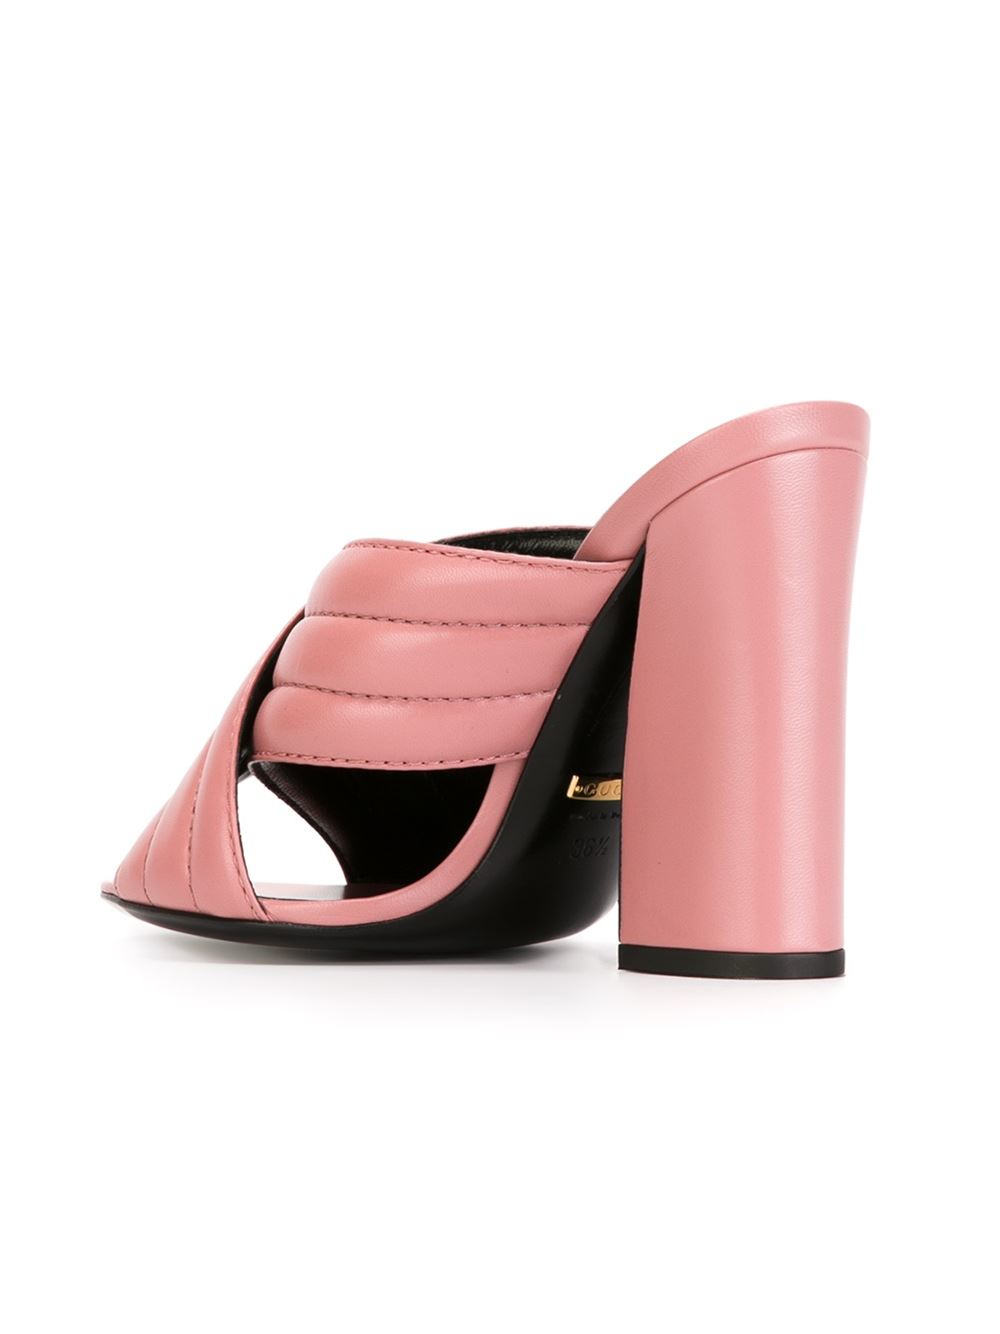 Lyst - Gucci Quilted Sandals in Pink